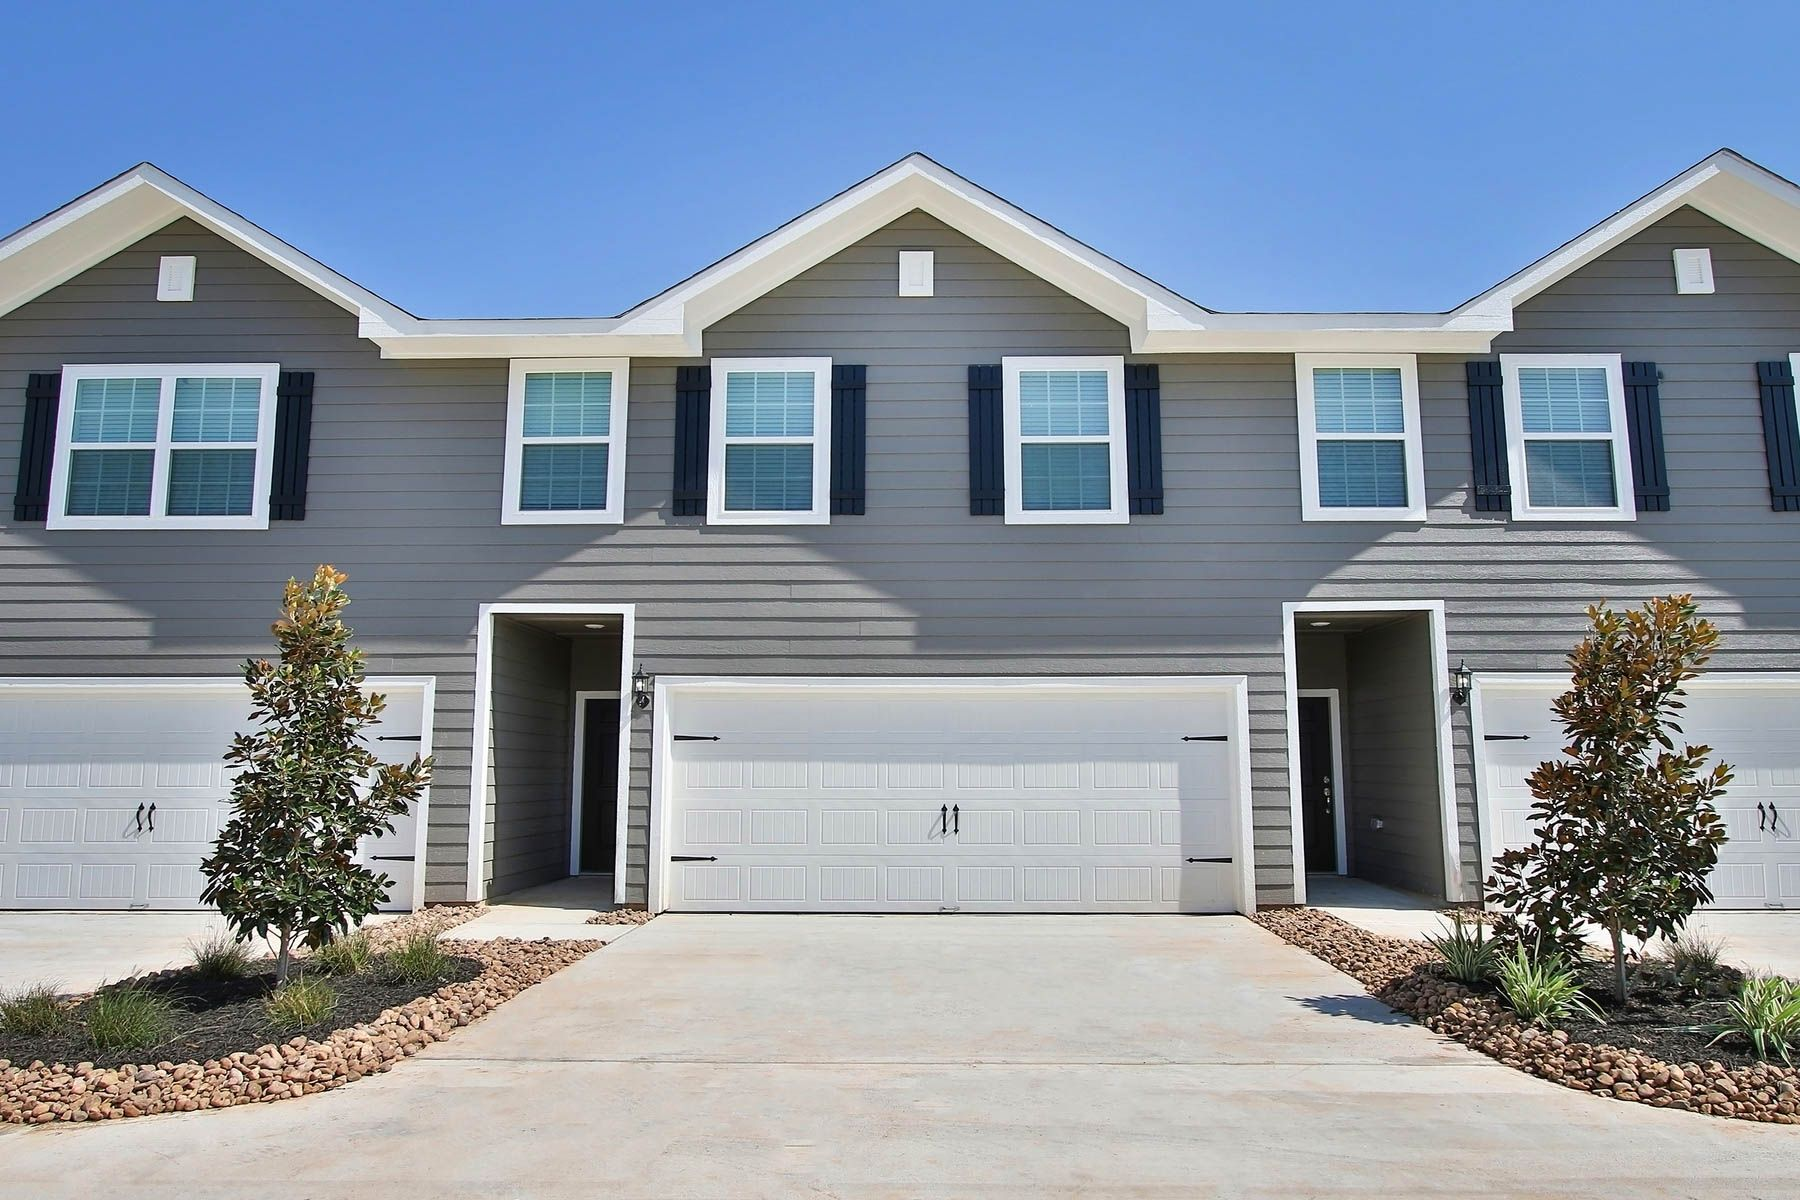 Windsor Estates Townhomes by LGI Homes:3 and 4 bedroom townhomes with attached garages and private back yards.